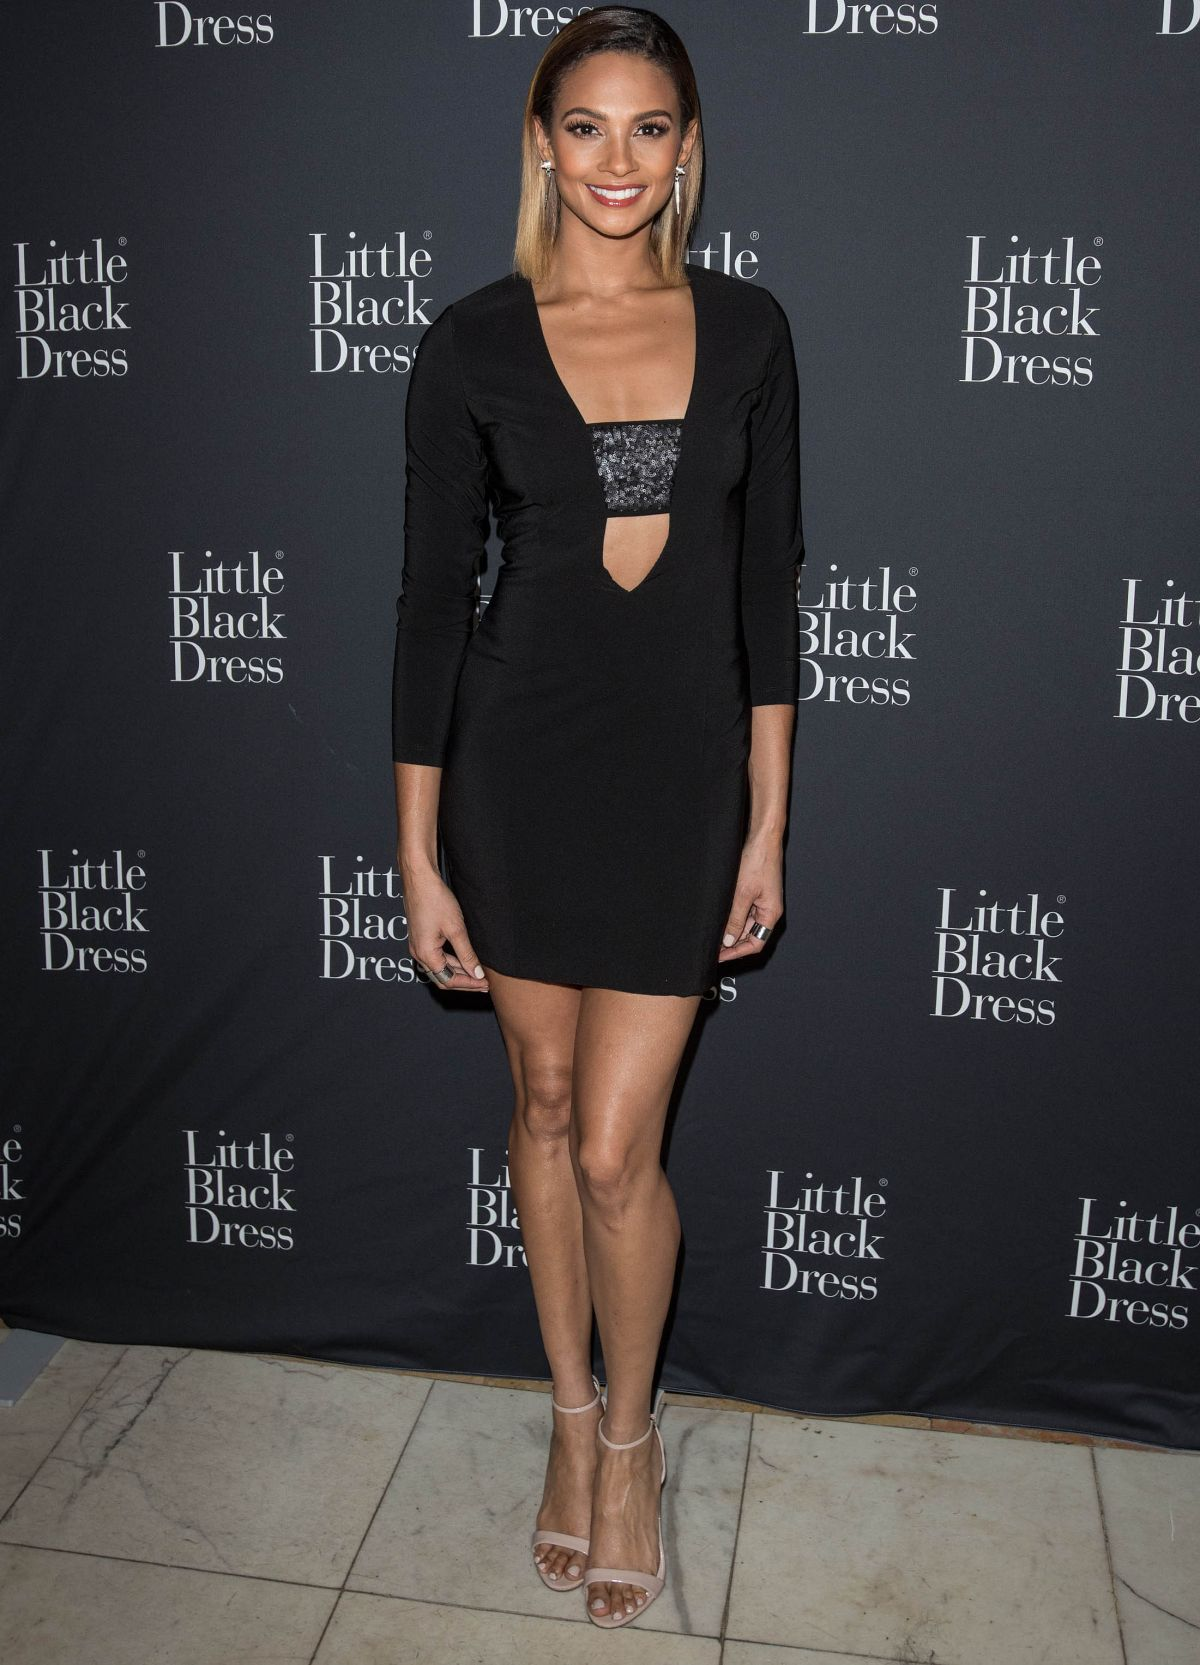 ALESHA DIXON at Little Black Dress Launch Party in London 10/22/2015